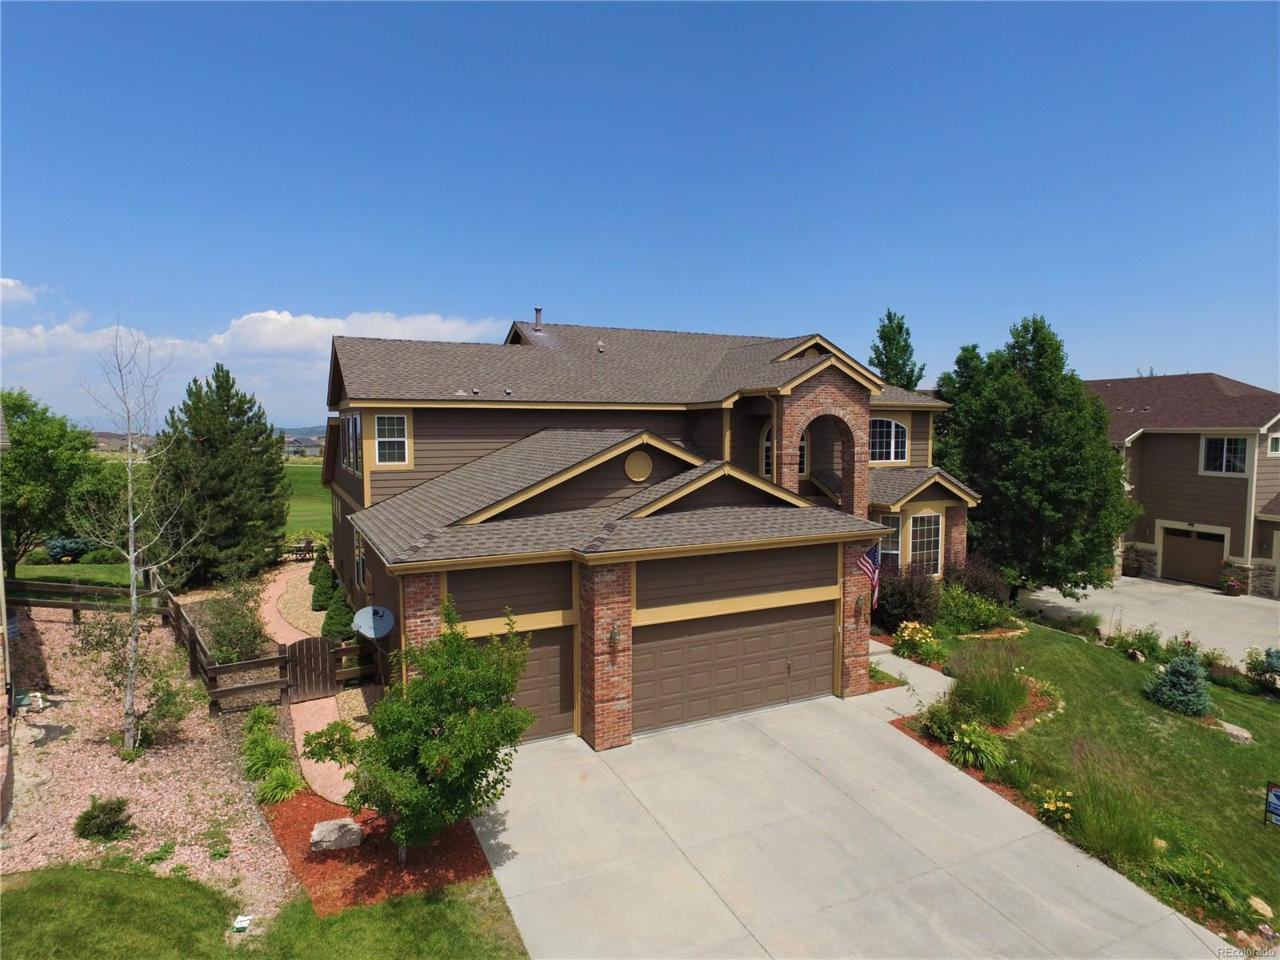 1823 Rosemary Drive, Castle Rock, CO 80109 (MLS #1657807) :: 8z Real Estate